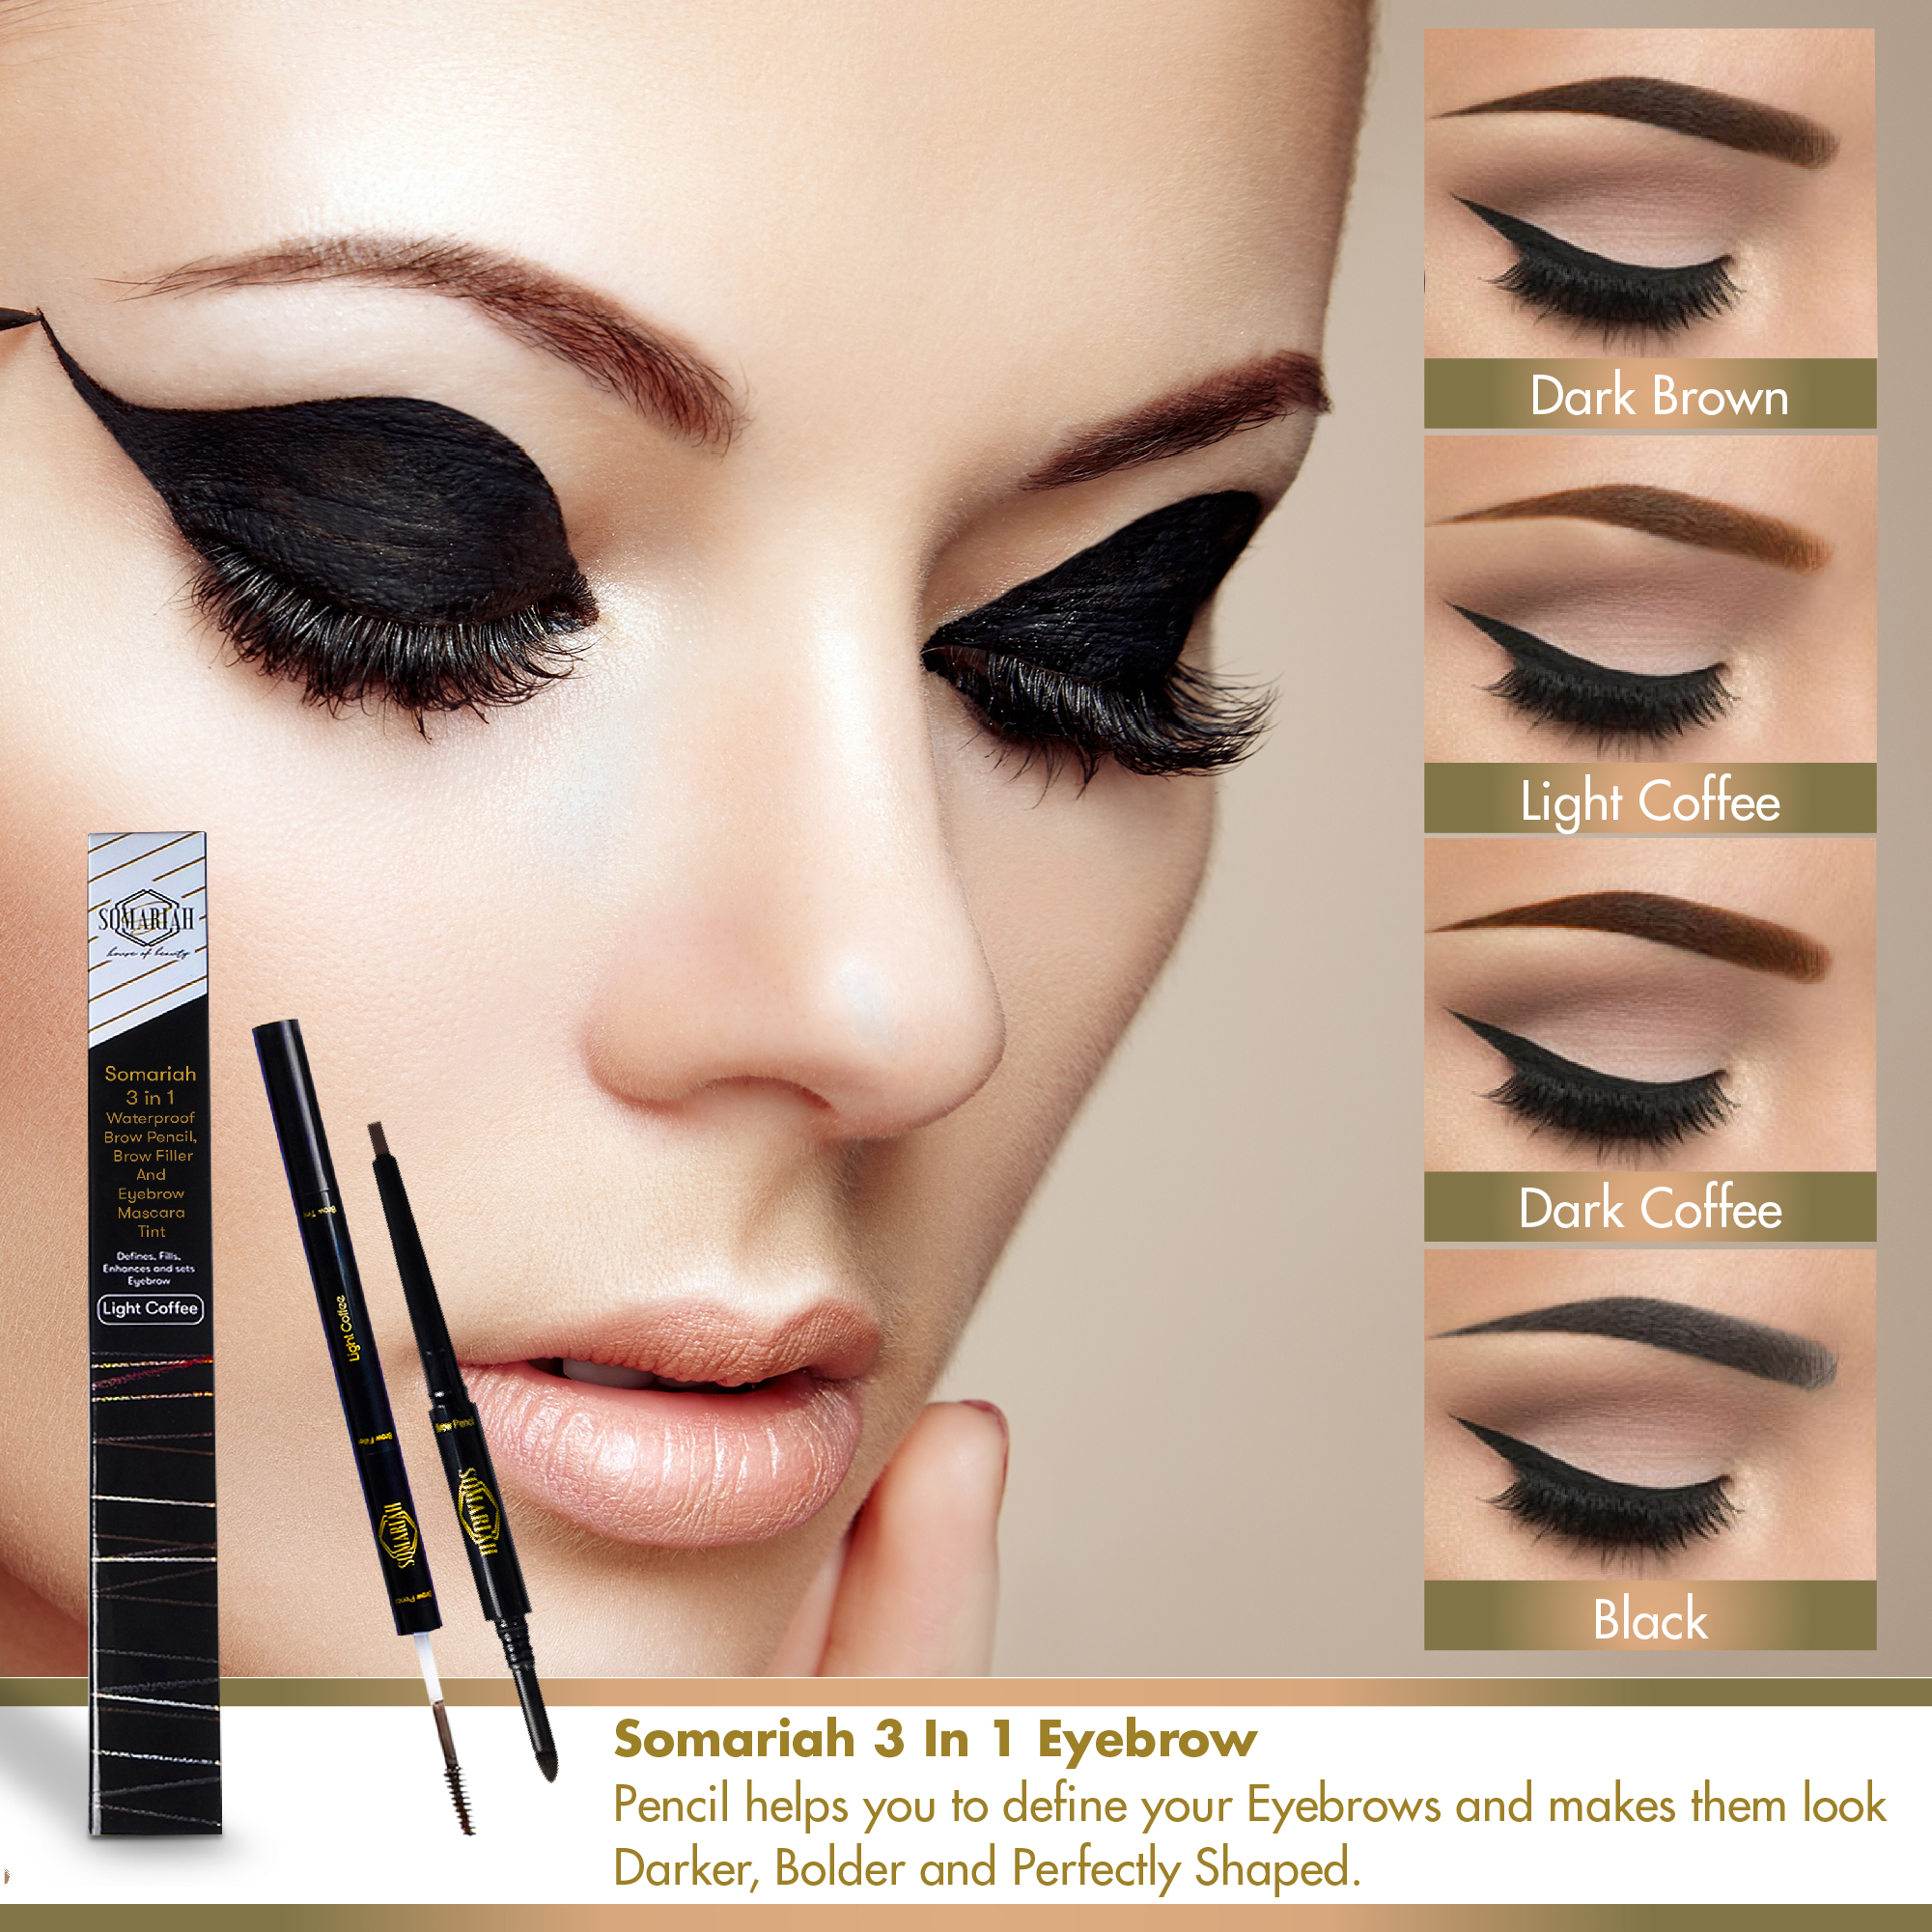 Somariah Eyebrow Makeup Kit 3 In 1